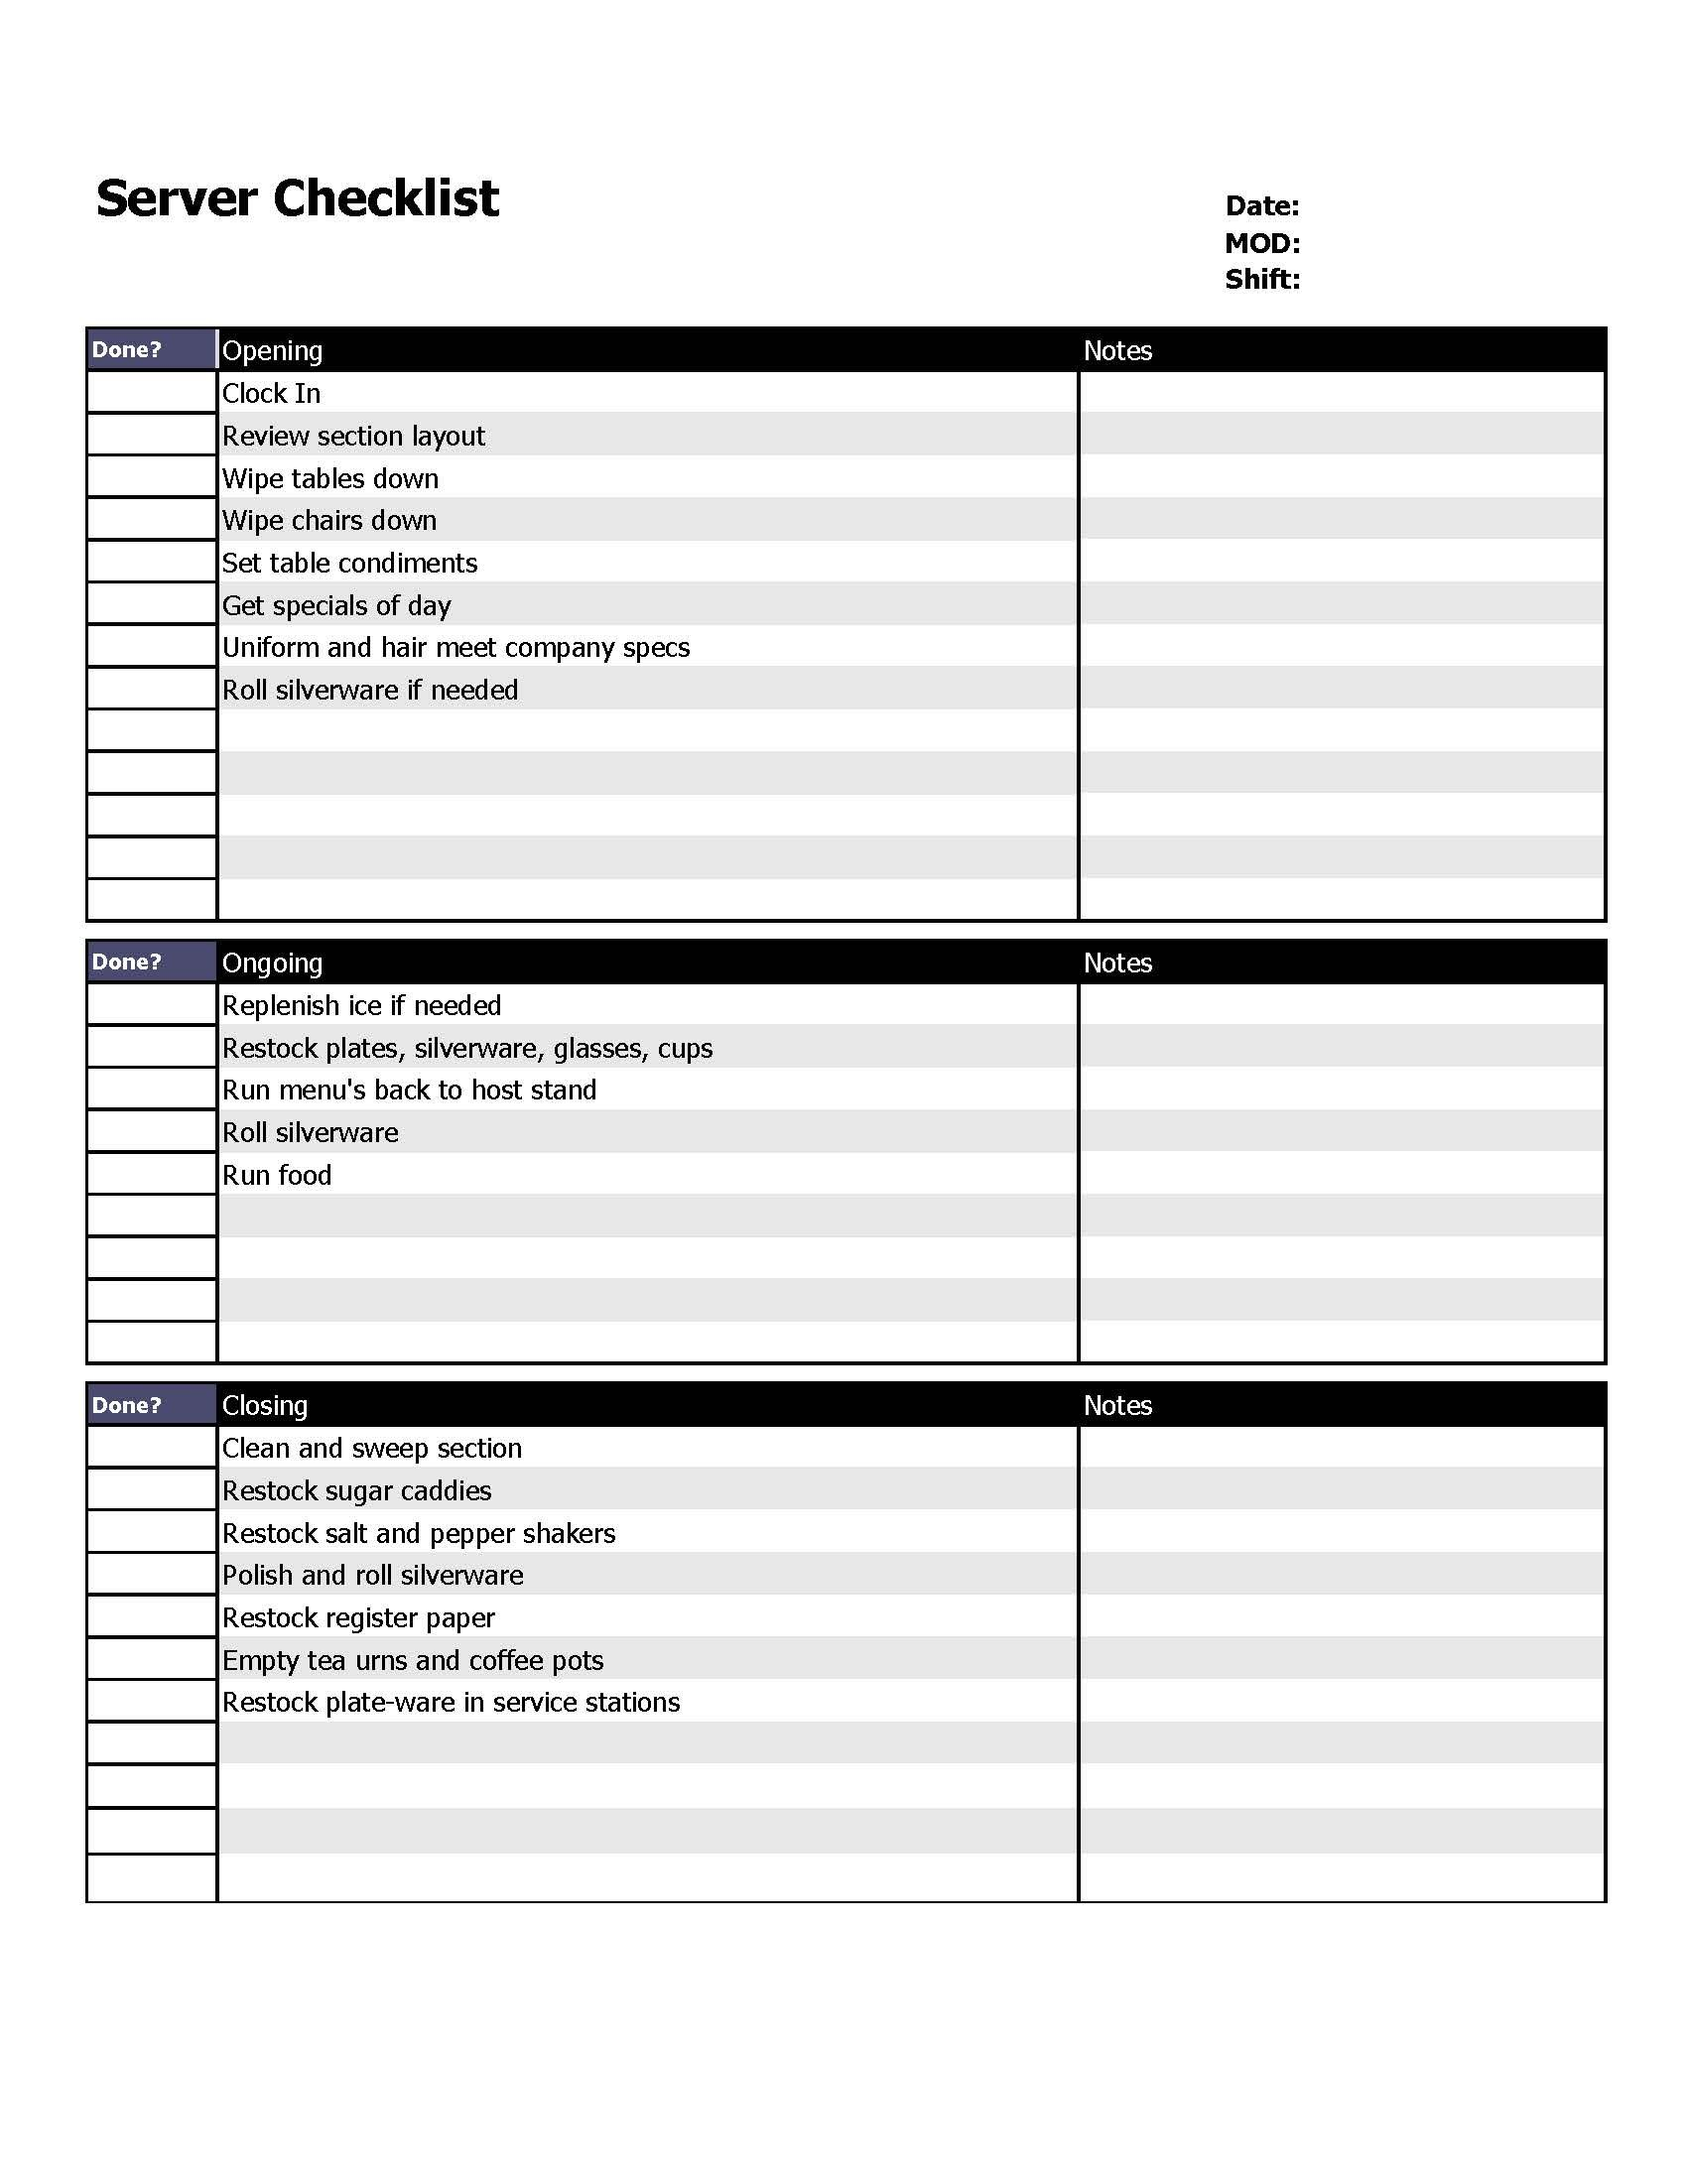 Restaurant server checklist form.